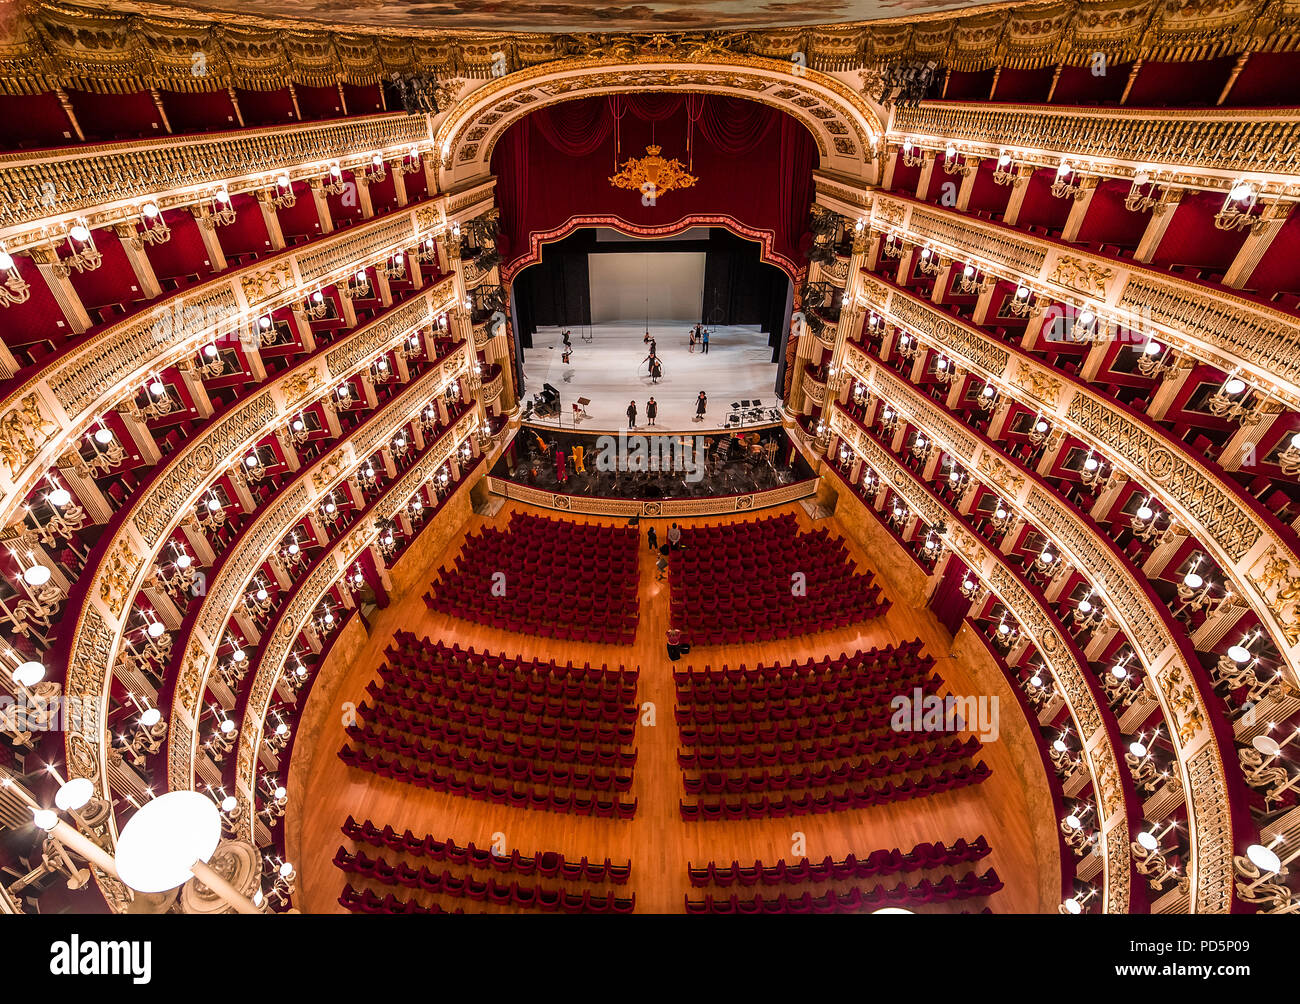 NAPLES, ITALY , MAY 16, 2014, Interiors and details of the Teatro di San  Carlo, Naples opera house, built 1737, May 16, 2014, in Naples, Italy Stock  Photo - Alamy